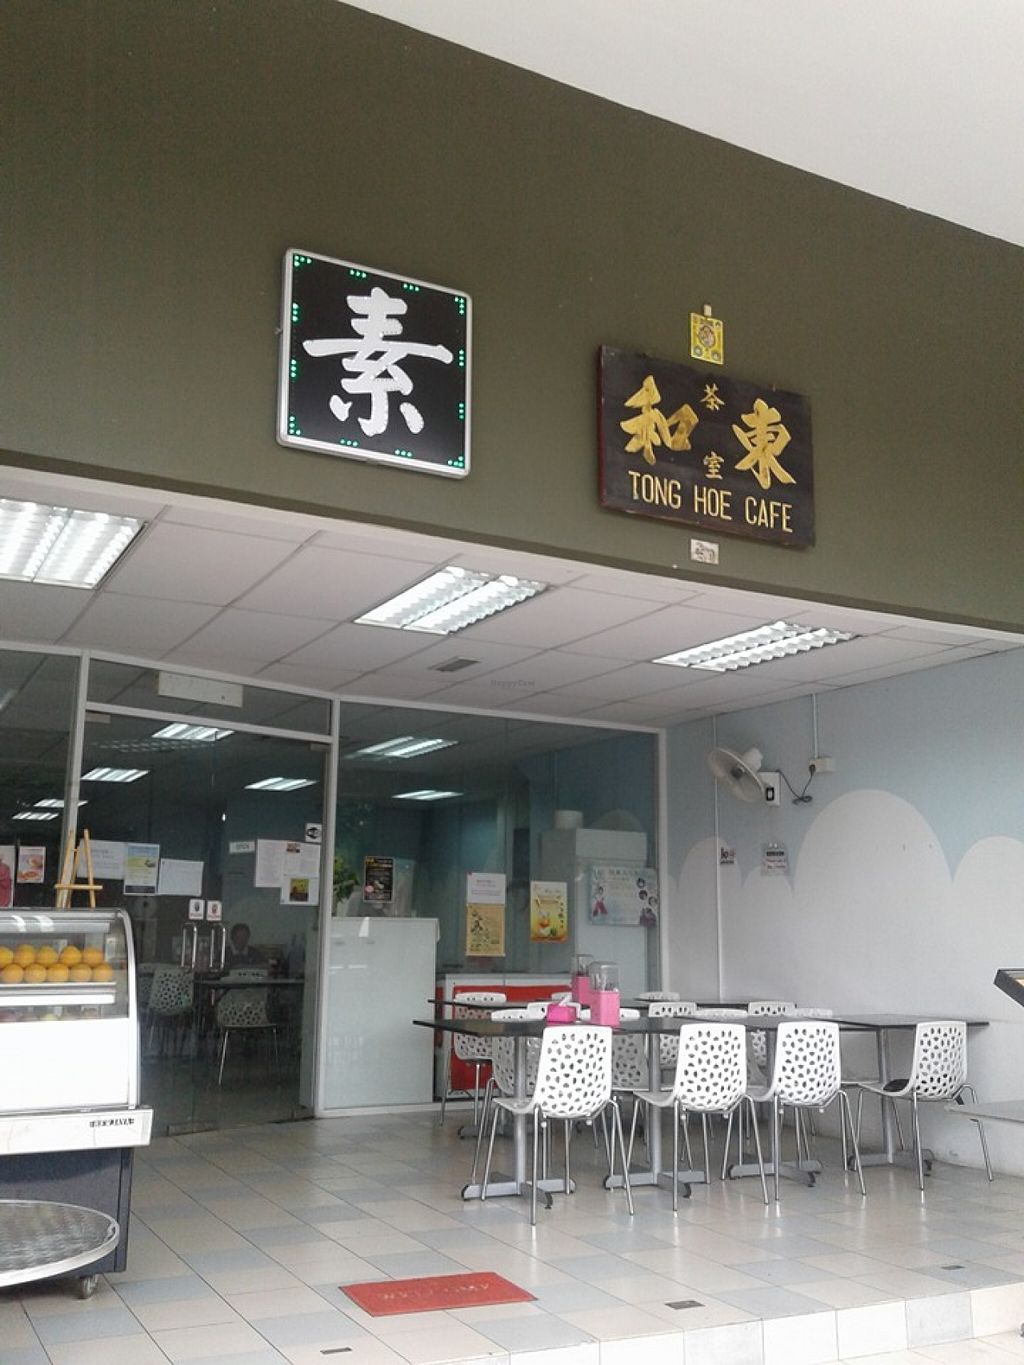 """Photo of Vege Restaurant Tong Hoe    by <a href=""""/members/profile/sfalee"""">sfalee</a> <br/>東和素食館 Dong Hoe Vegetarian Restaurant <br/> June 21, 2016  - <a href='/contact/abuse/image/46478/155264'>Report</a>"""